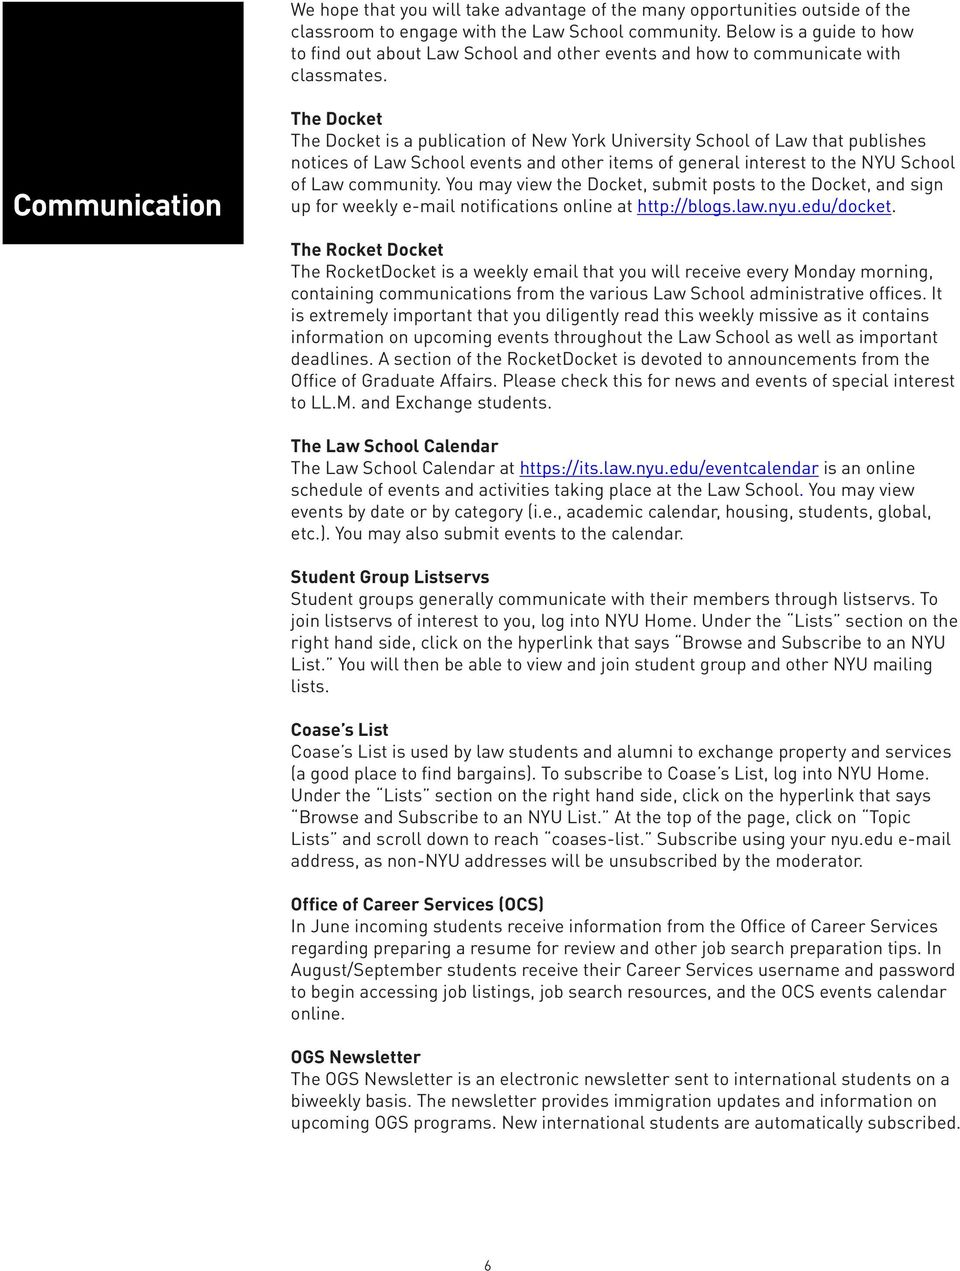 Communication The Docket The Docket is a publication of New York University School of Law that publishes notices of Law School events and other items of general interest to the NYU School of Law